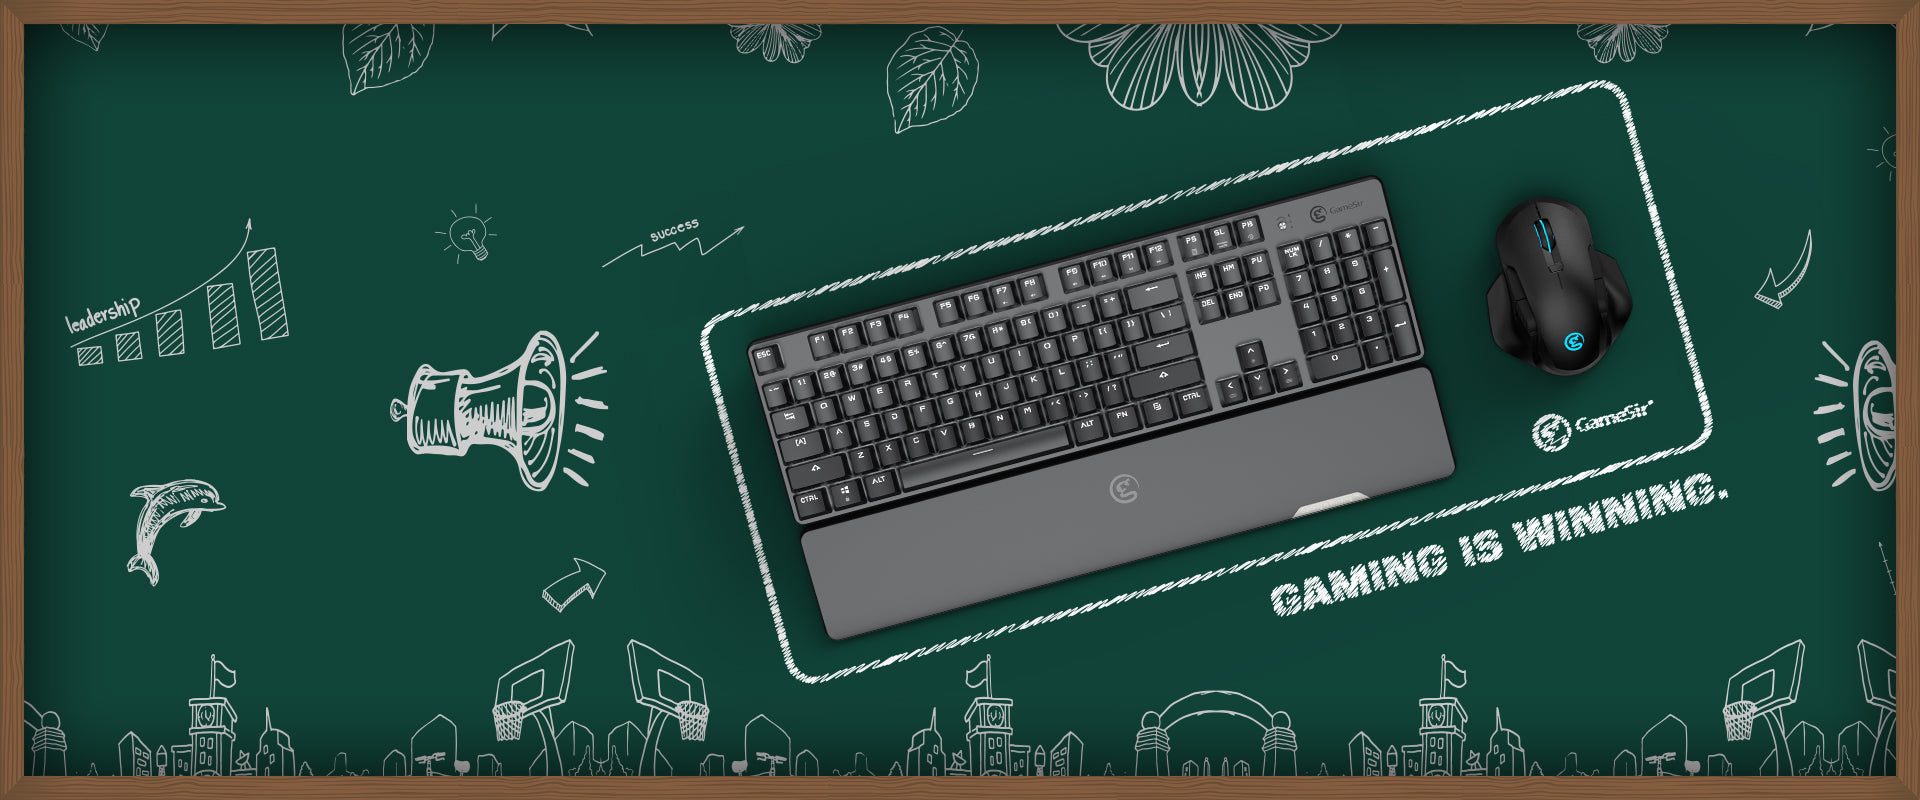 GameSir | The Global Leading Game Peripheral Brand – GameSir